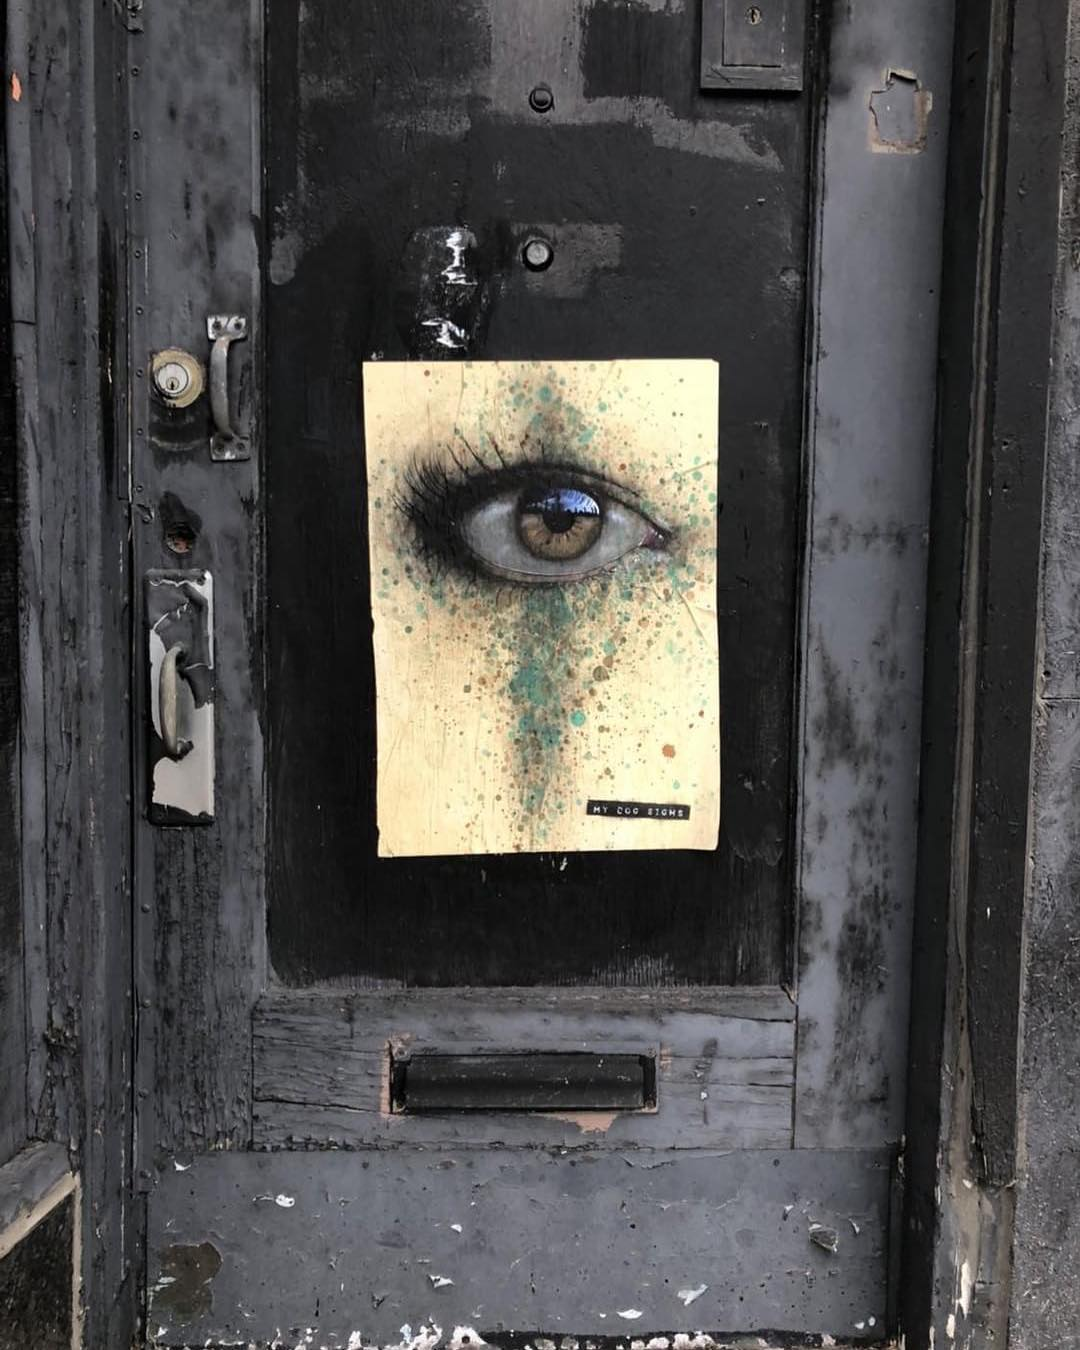 After Many Art Galleries Rejected Him, This Artist Is Leaving His Paintings For People To Find